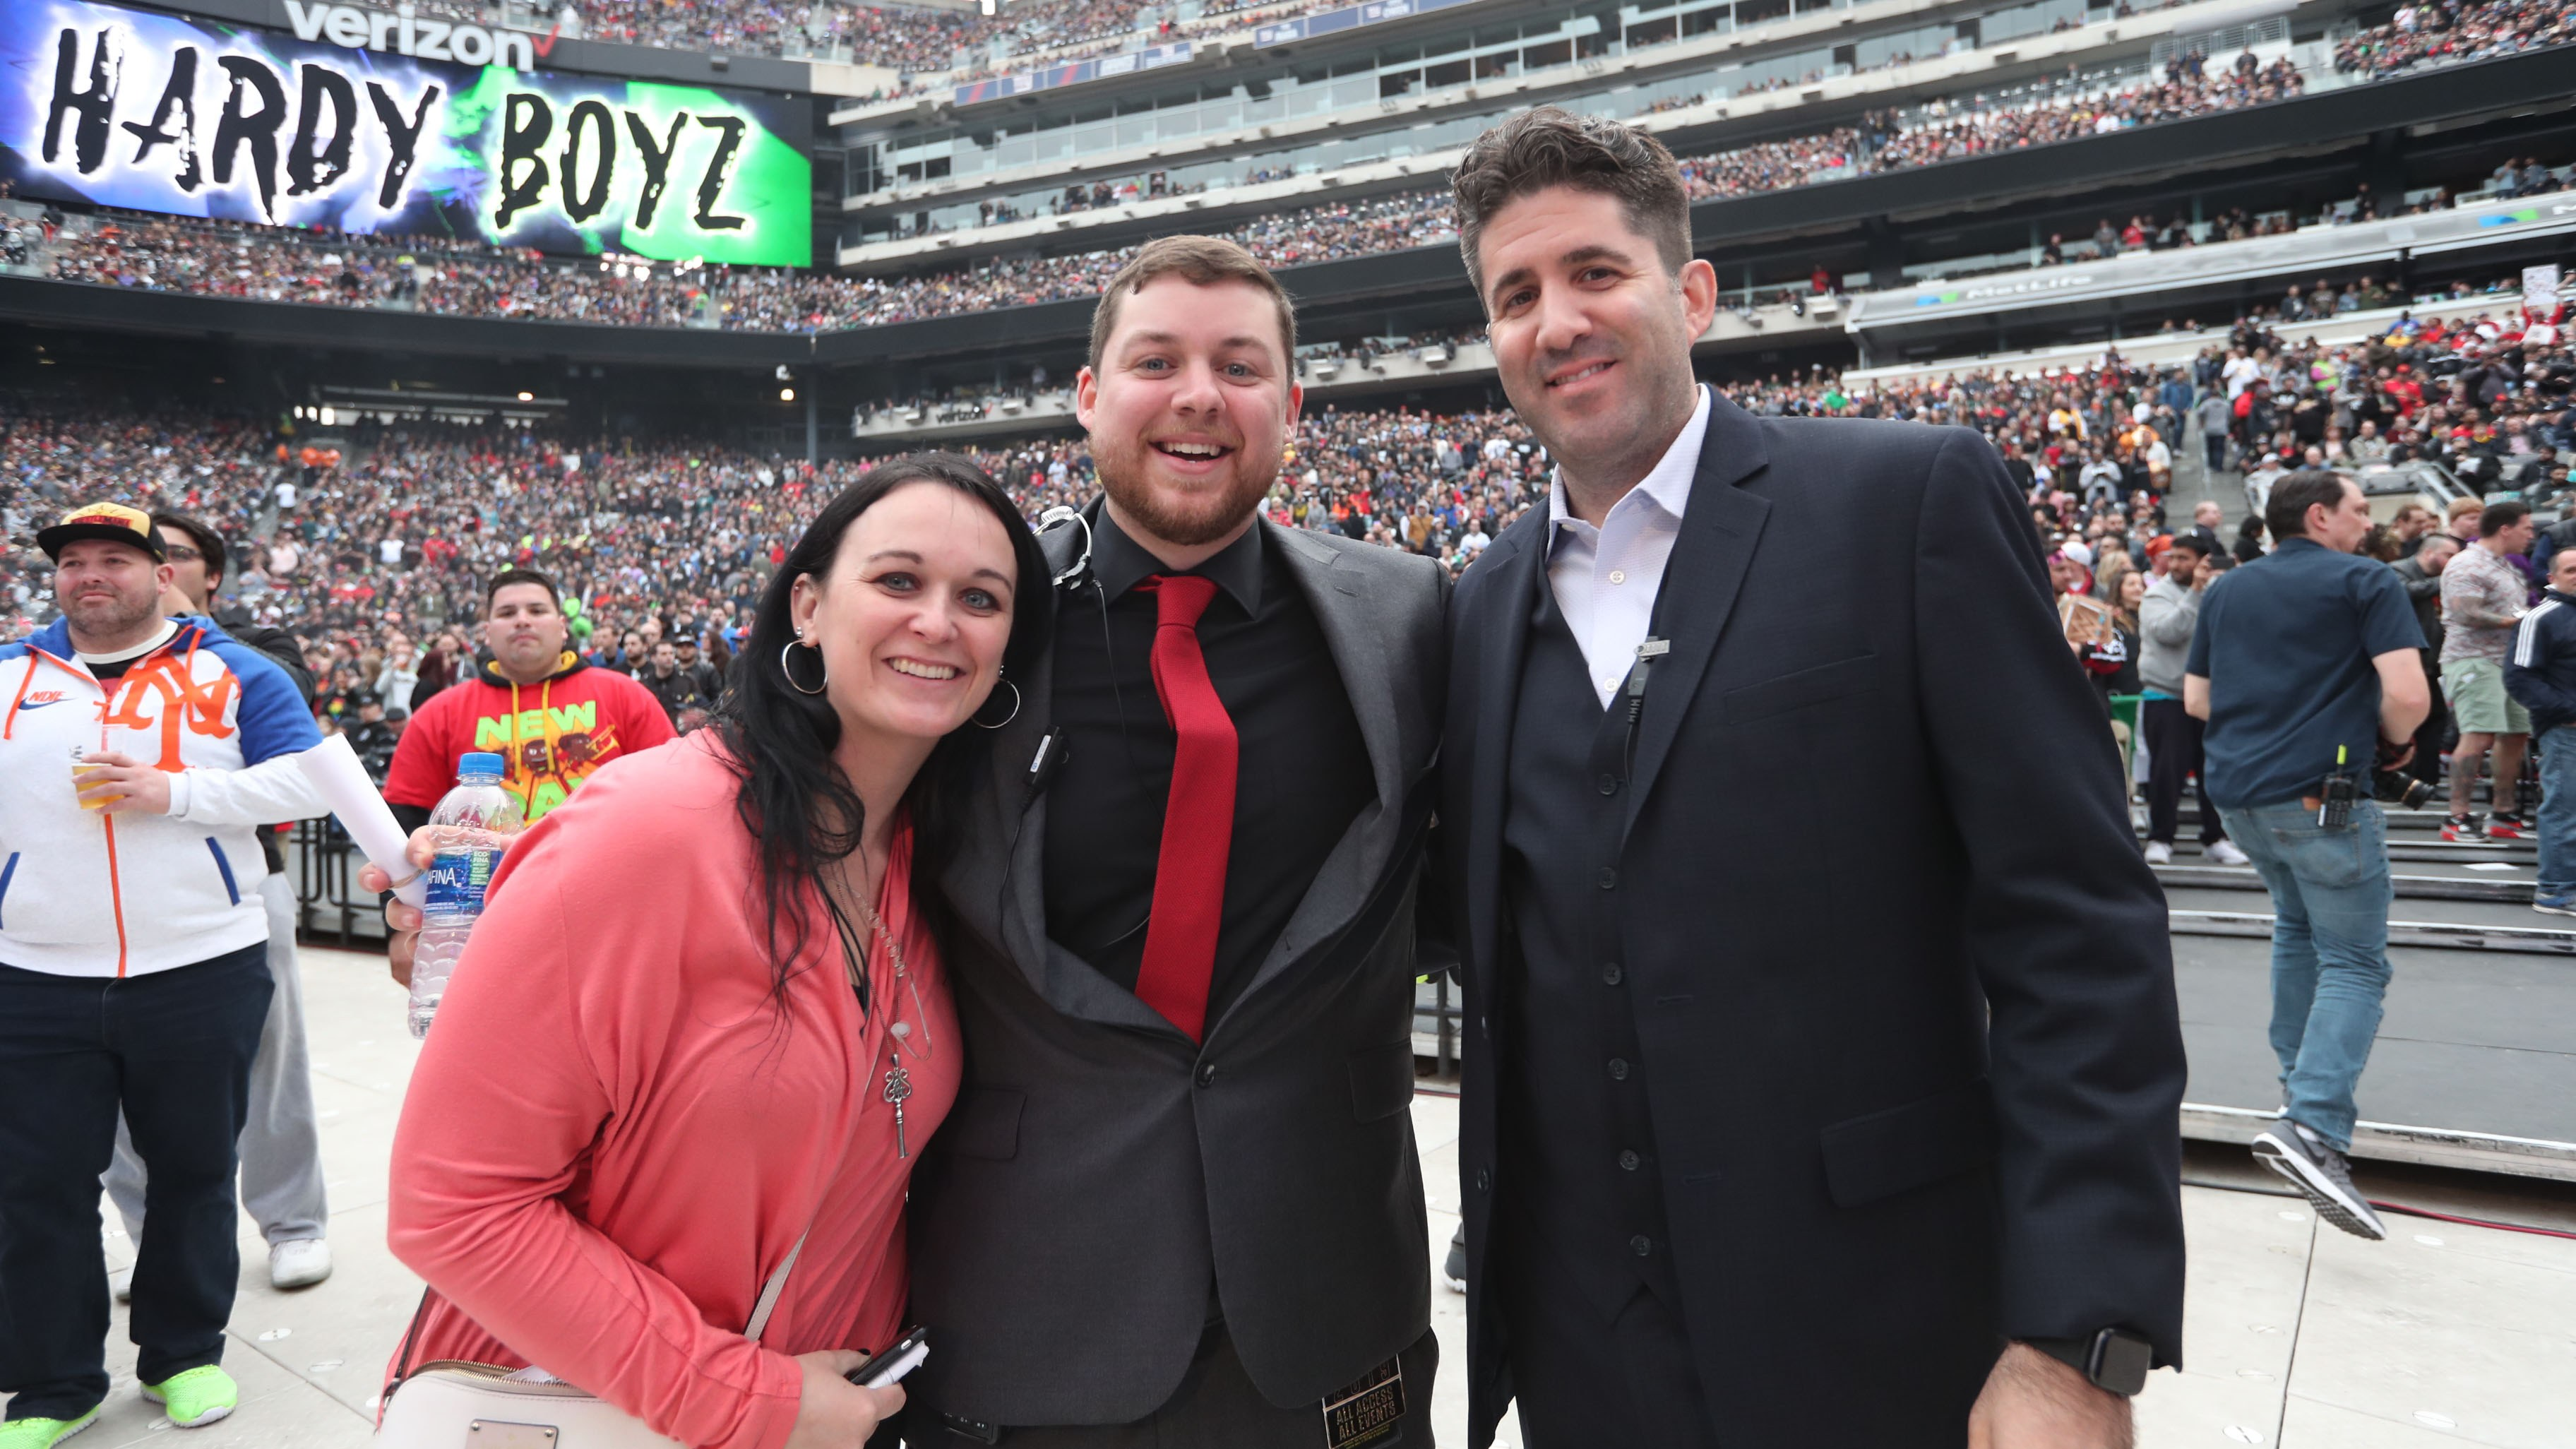 A Sports Marketing & Media Grad Turned Marketing Manager for WWE - Hero image